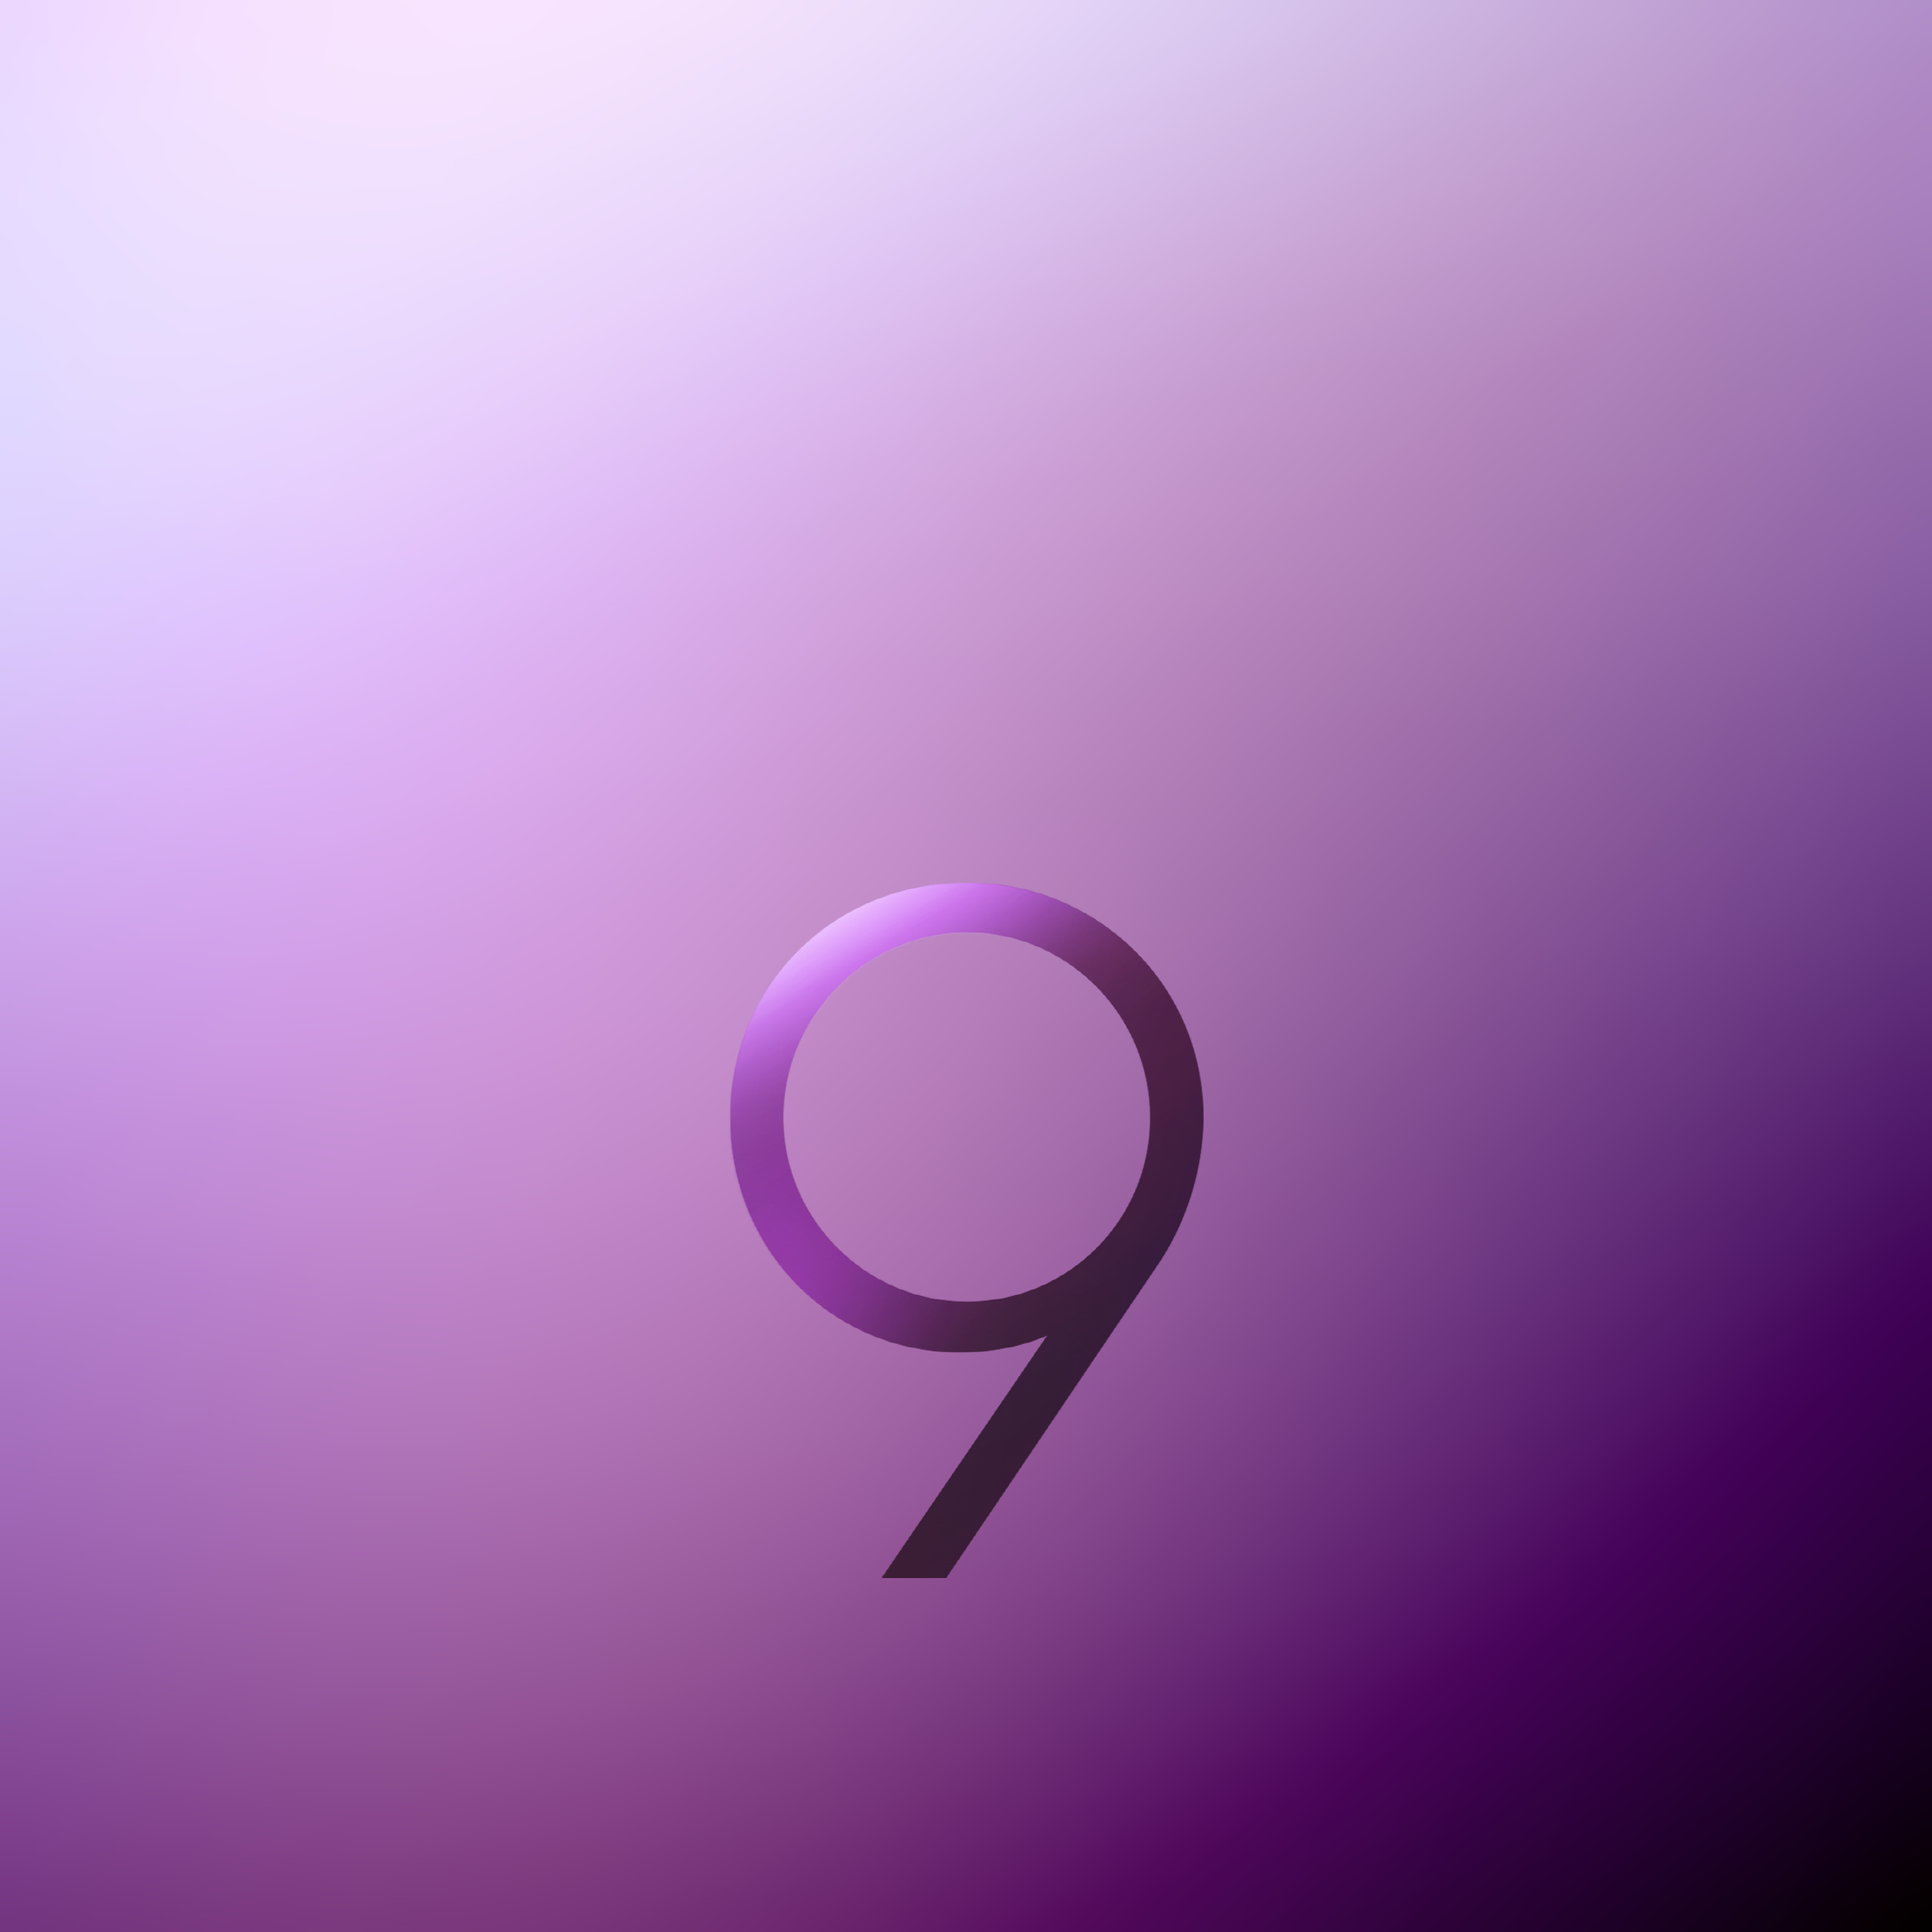 Galaxy S9 Wallpaper 16